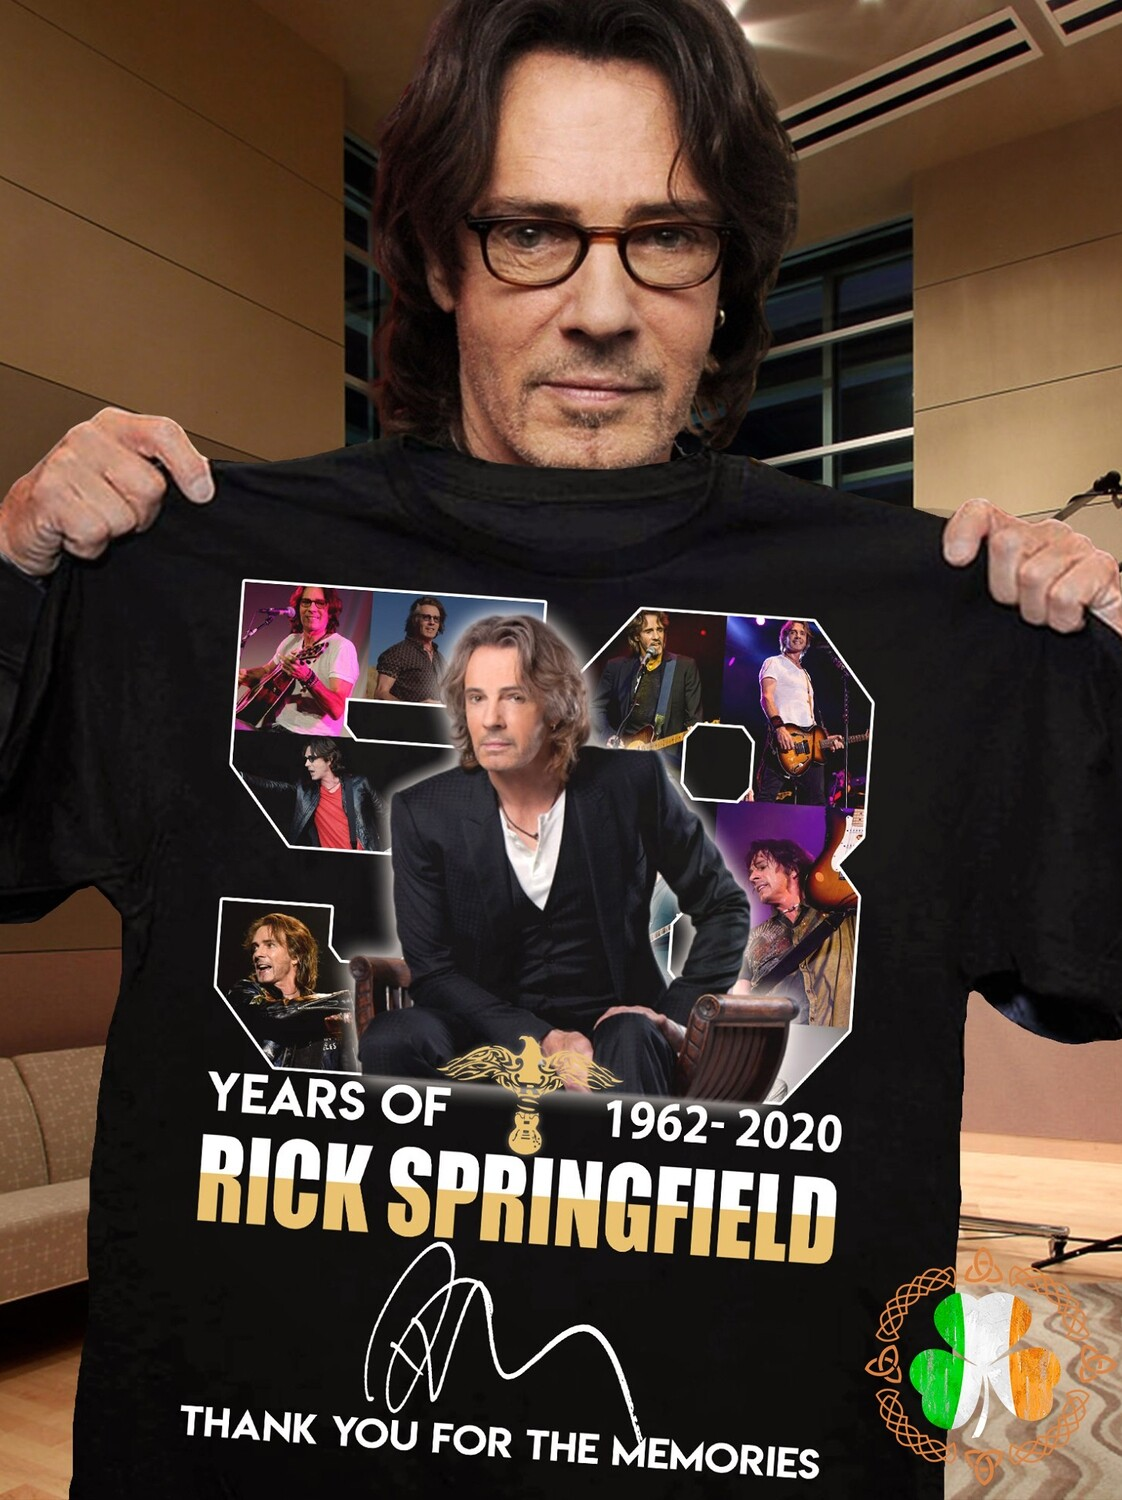 58 Years Of Rick Springfield 1962 2020 Thank You For The Memories Shirt